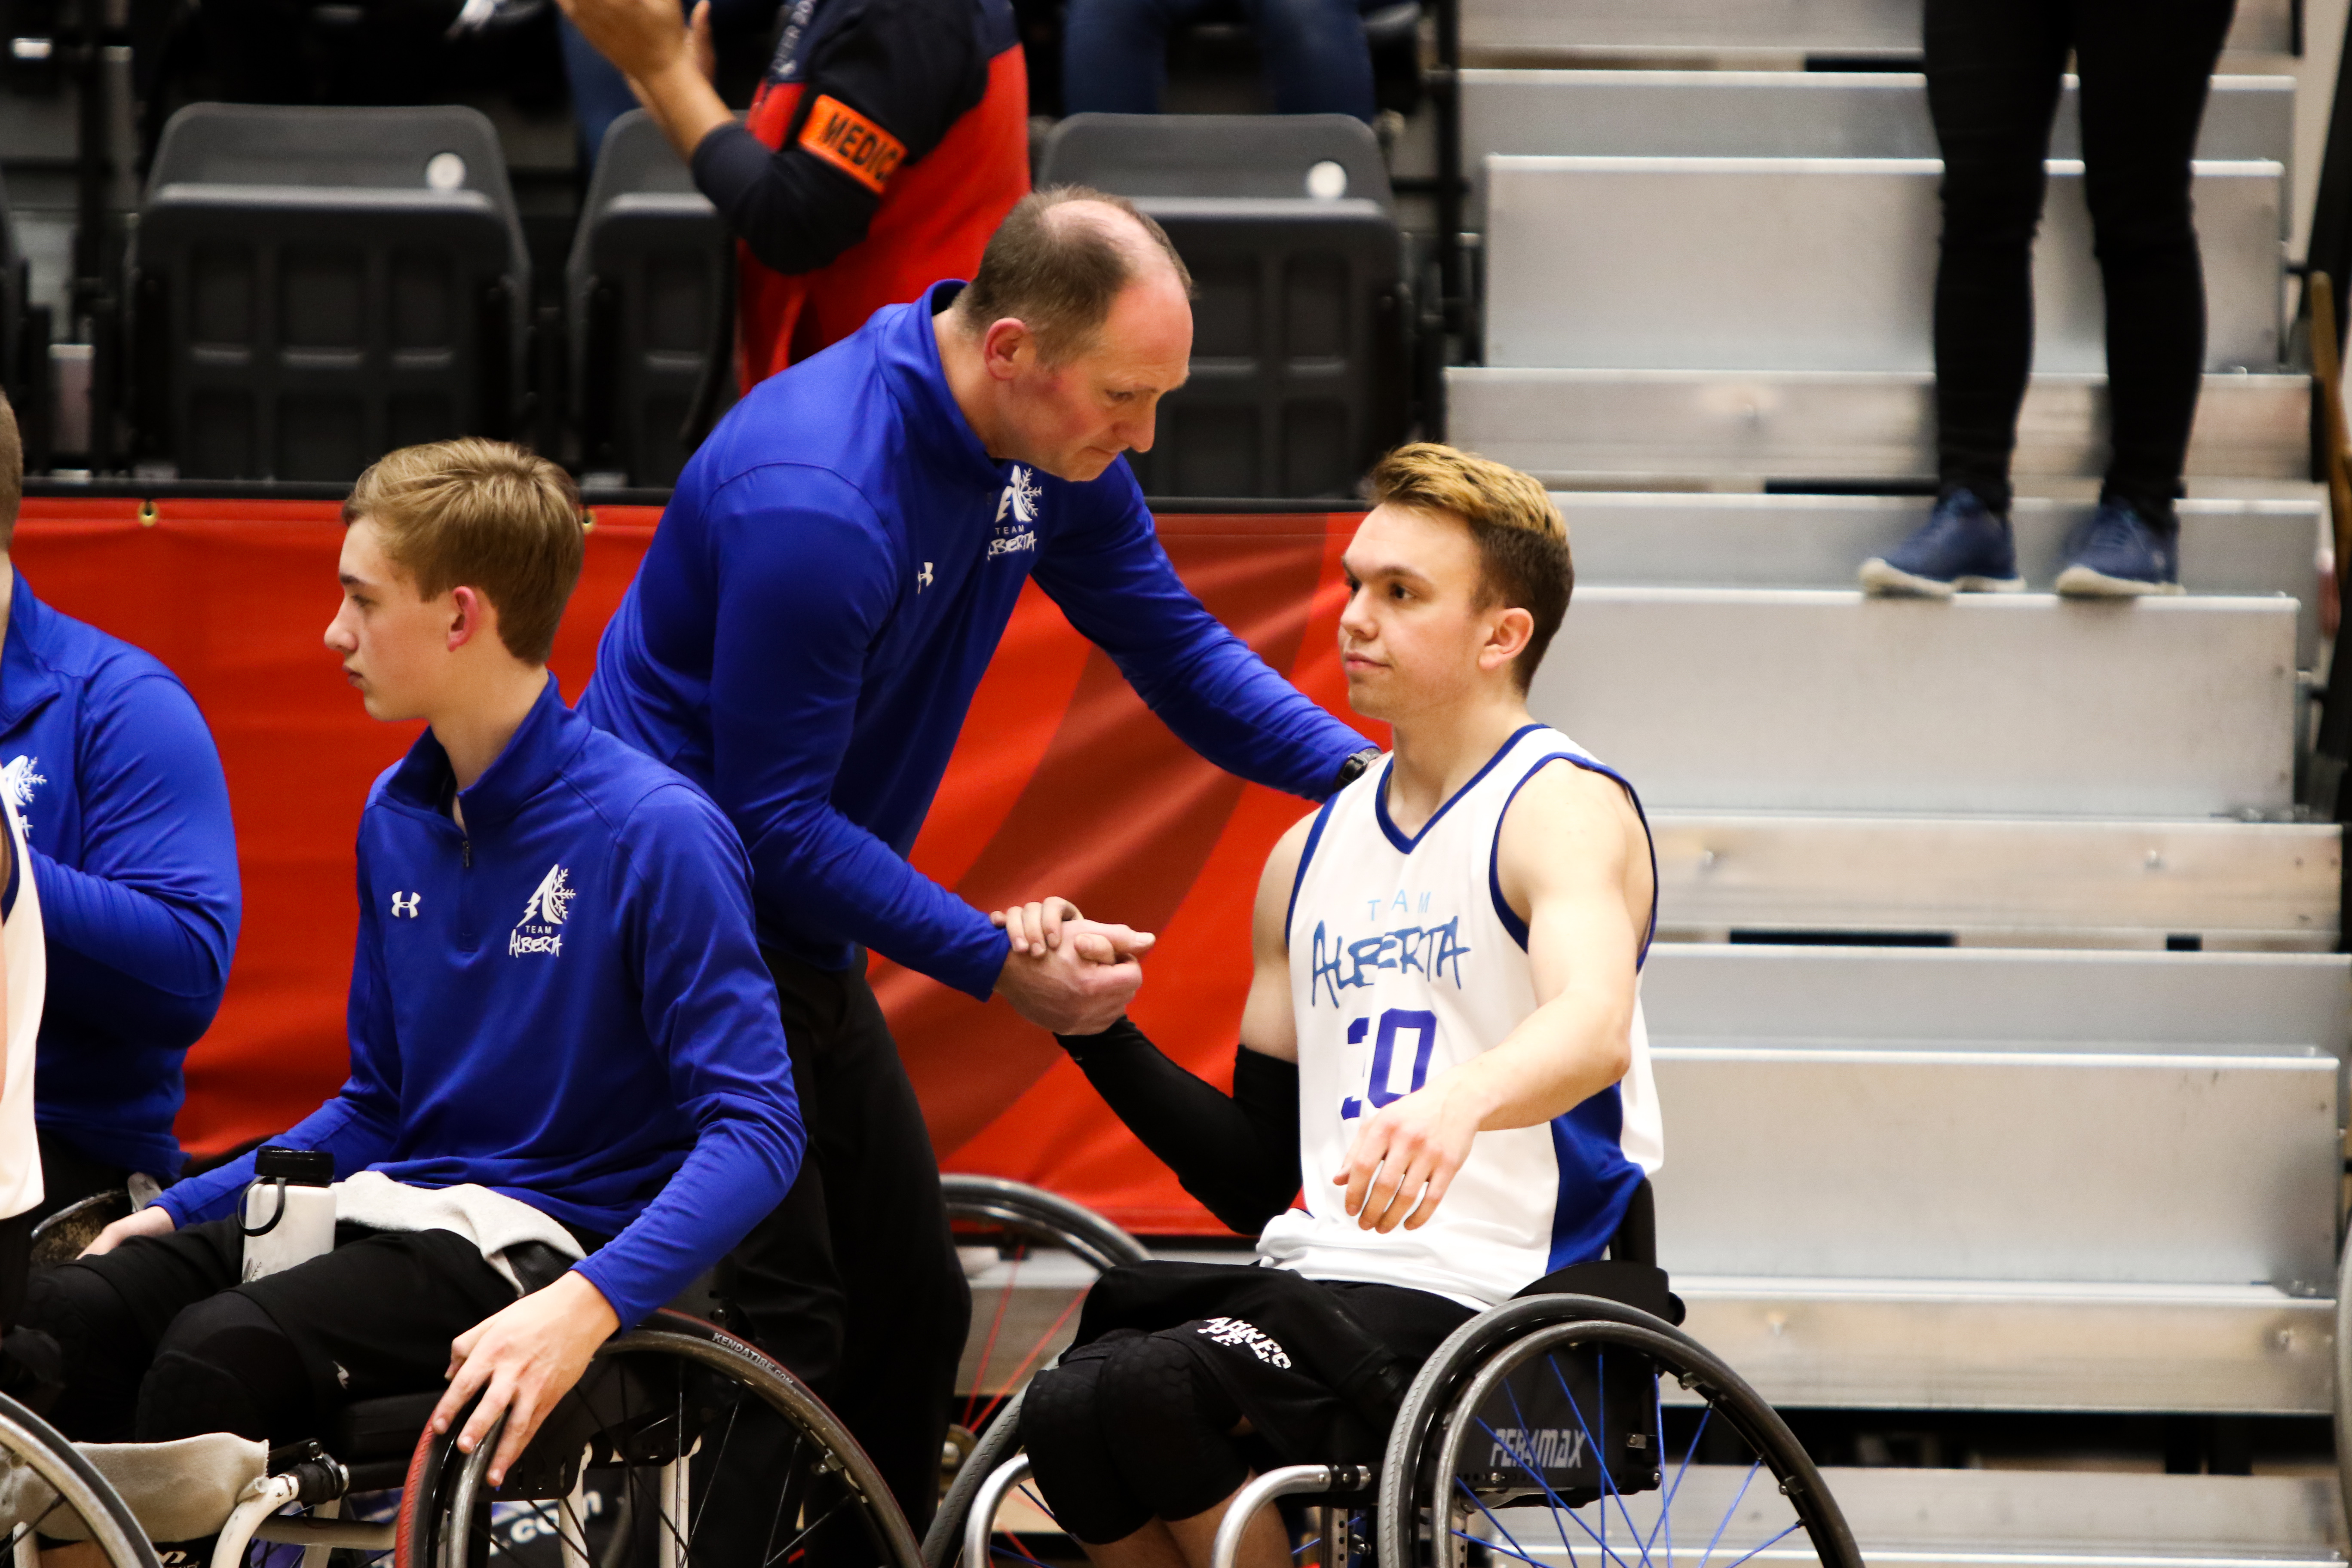 Meet Team AB Wheelchair Basketball Coach Darrell Nordell